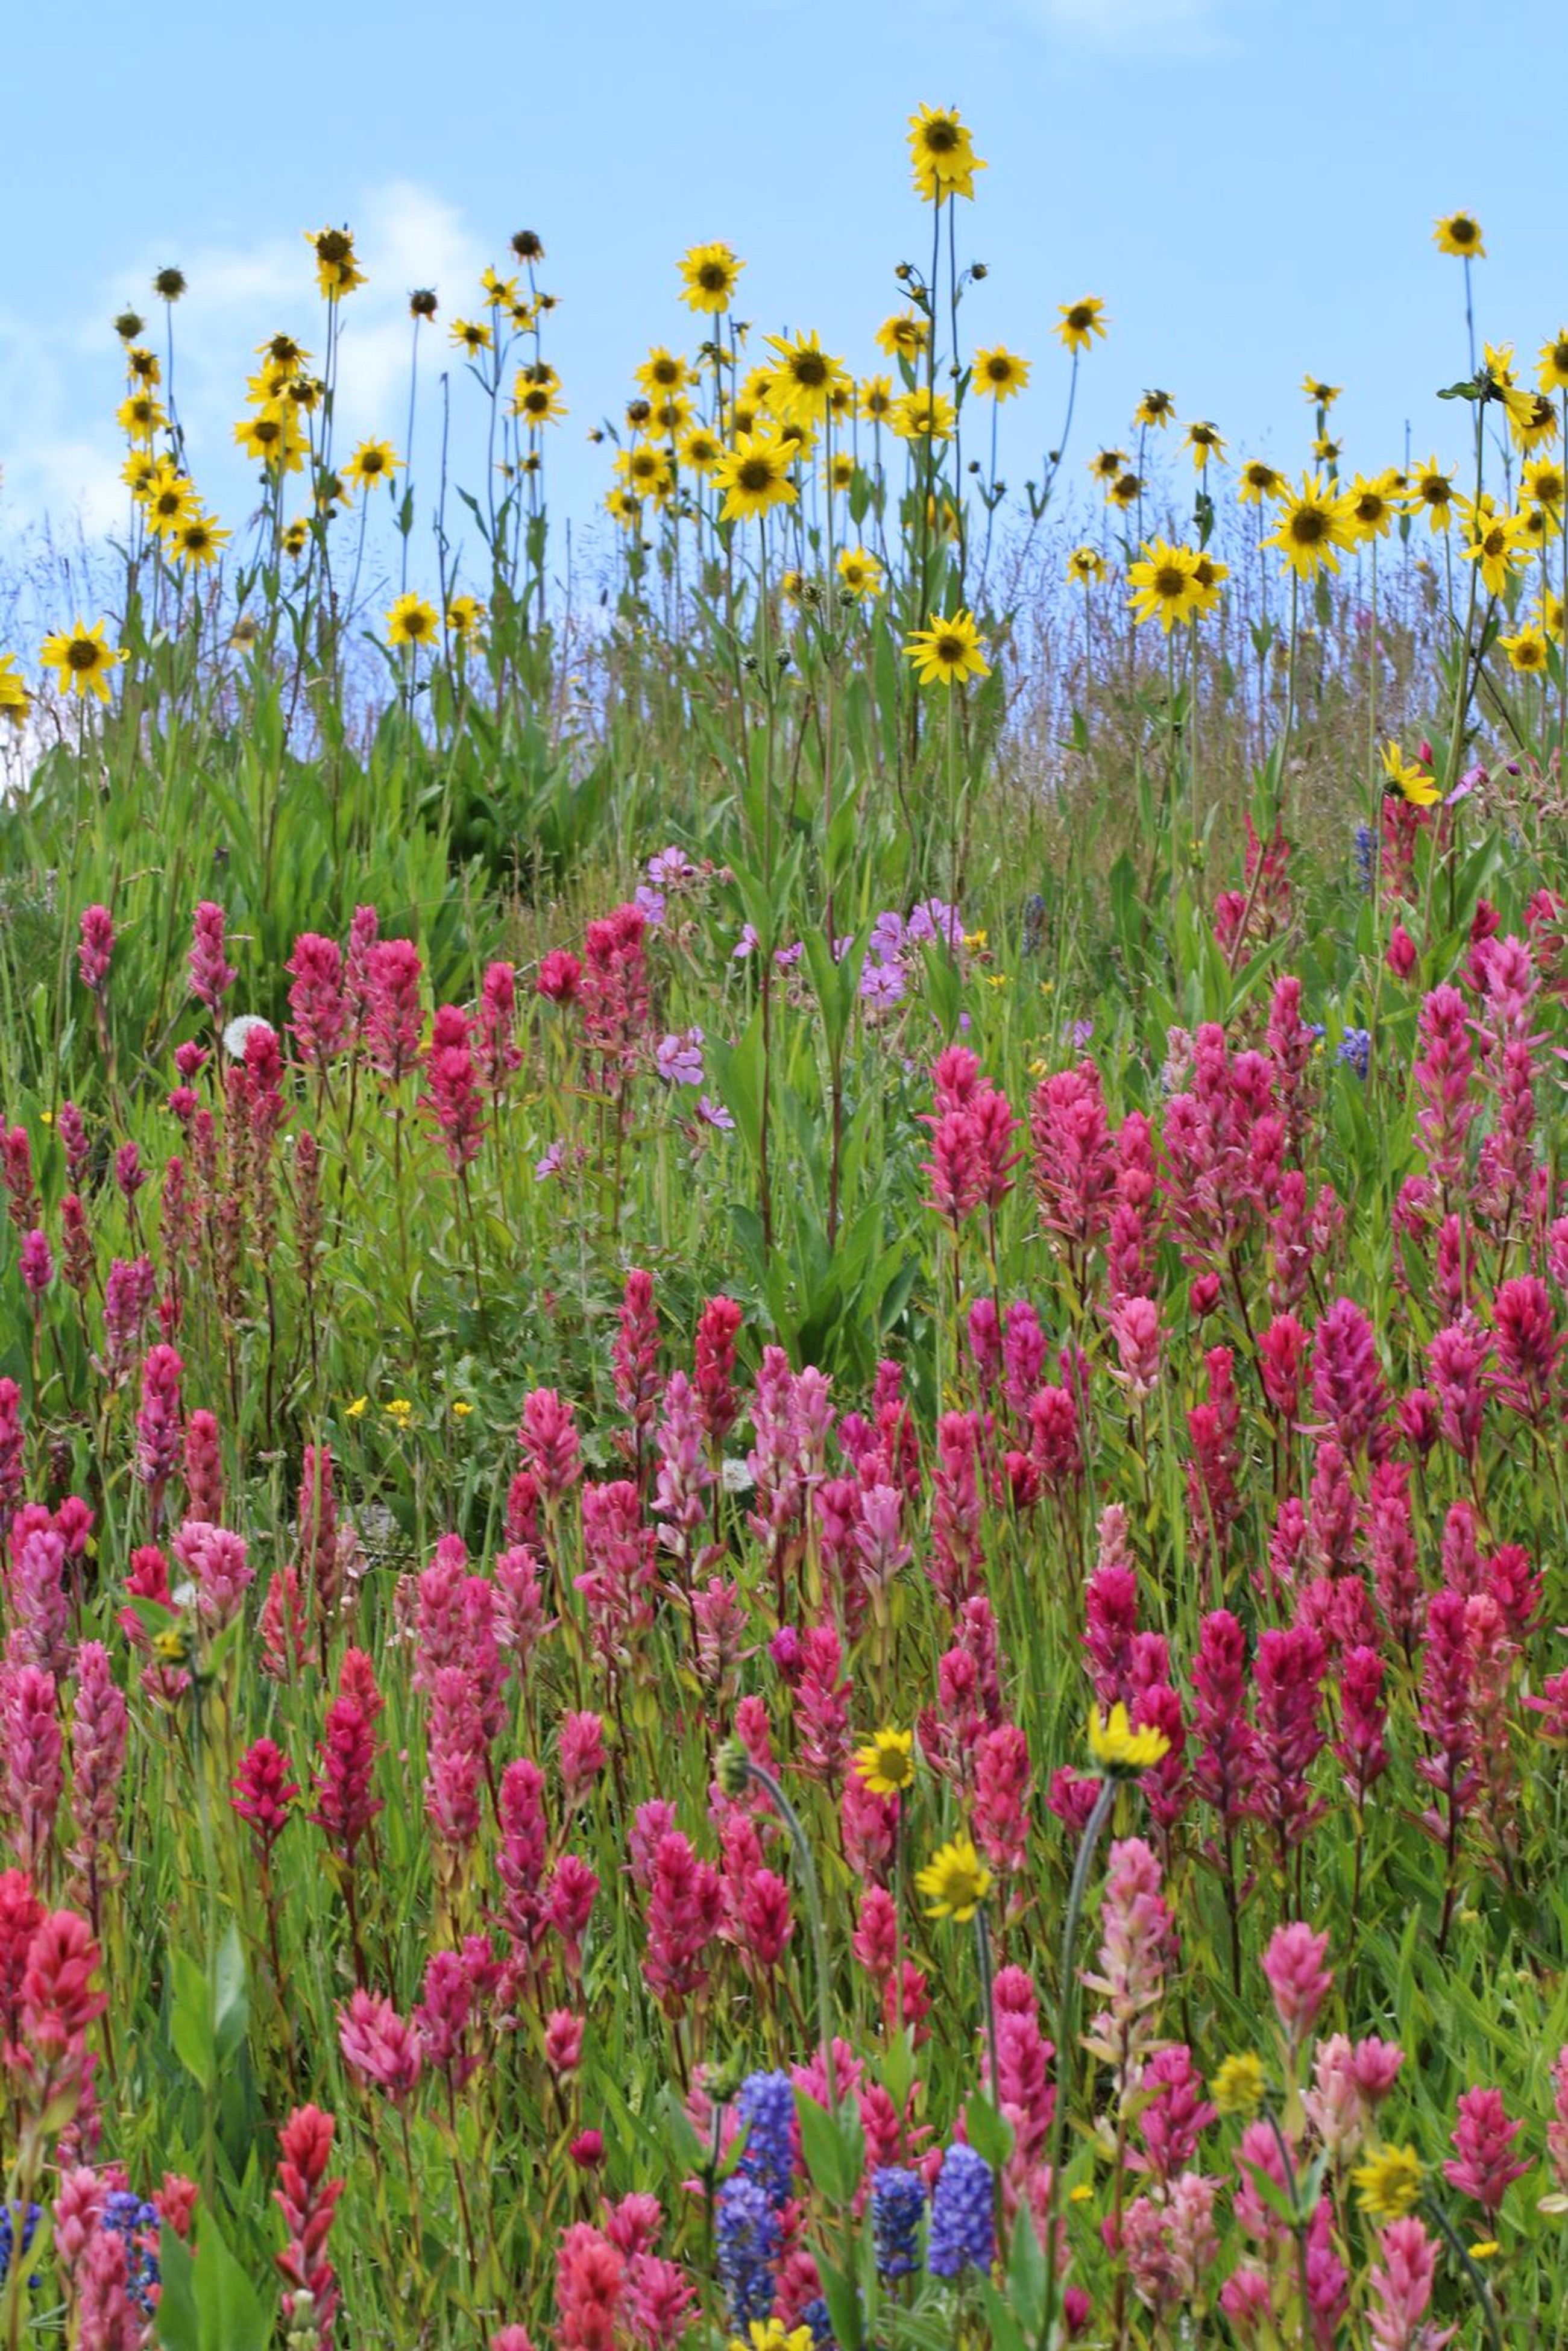 flower, freshness, growth, fragility, beauty in nature, blooming, petal, plant, nature, field, abundance, in bloom, flower head, blossom, pink color, sky, springtime, stem, day, botany